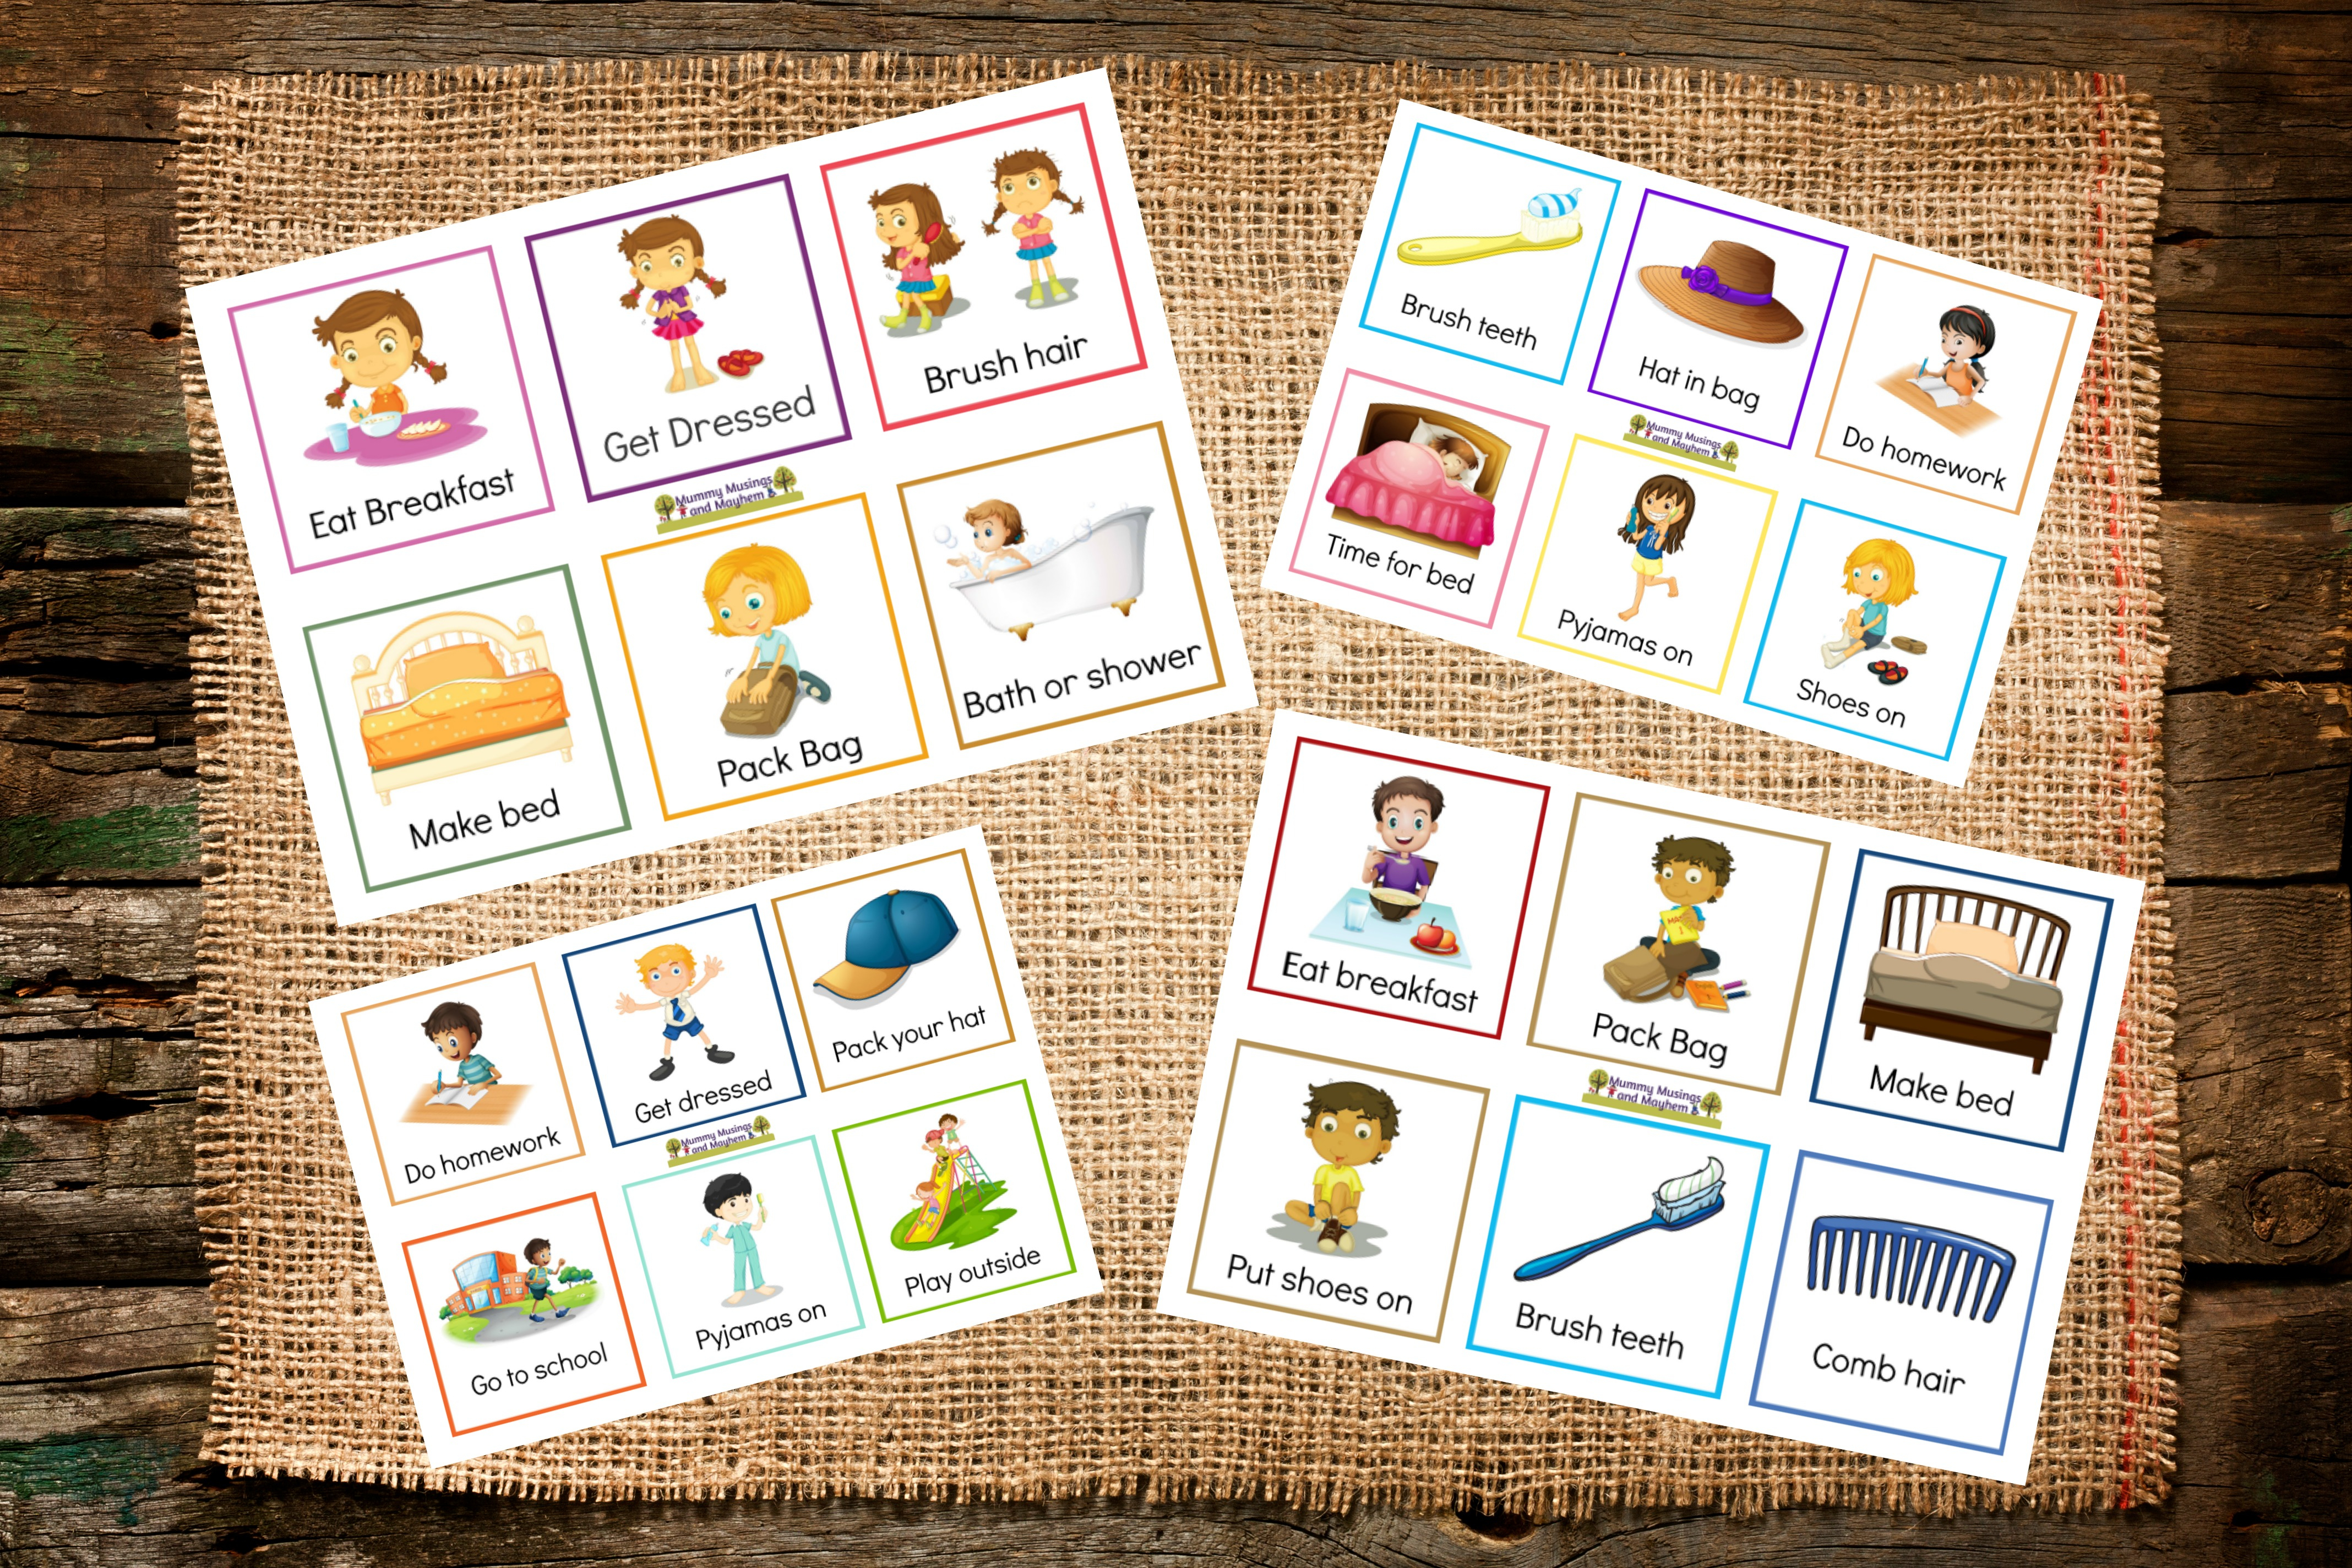 Back To School Routines - Free Printable Cards To Make It Easier - Routine Cards Printable Free